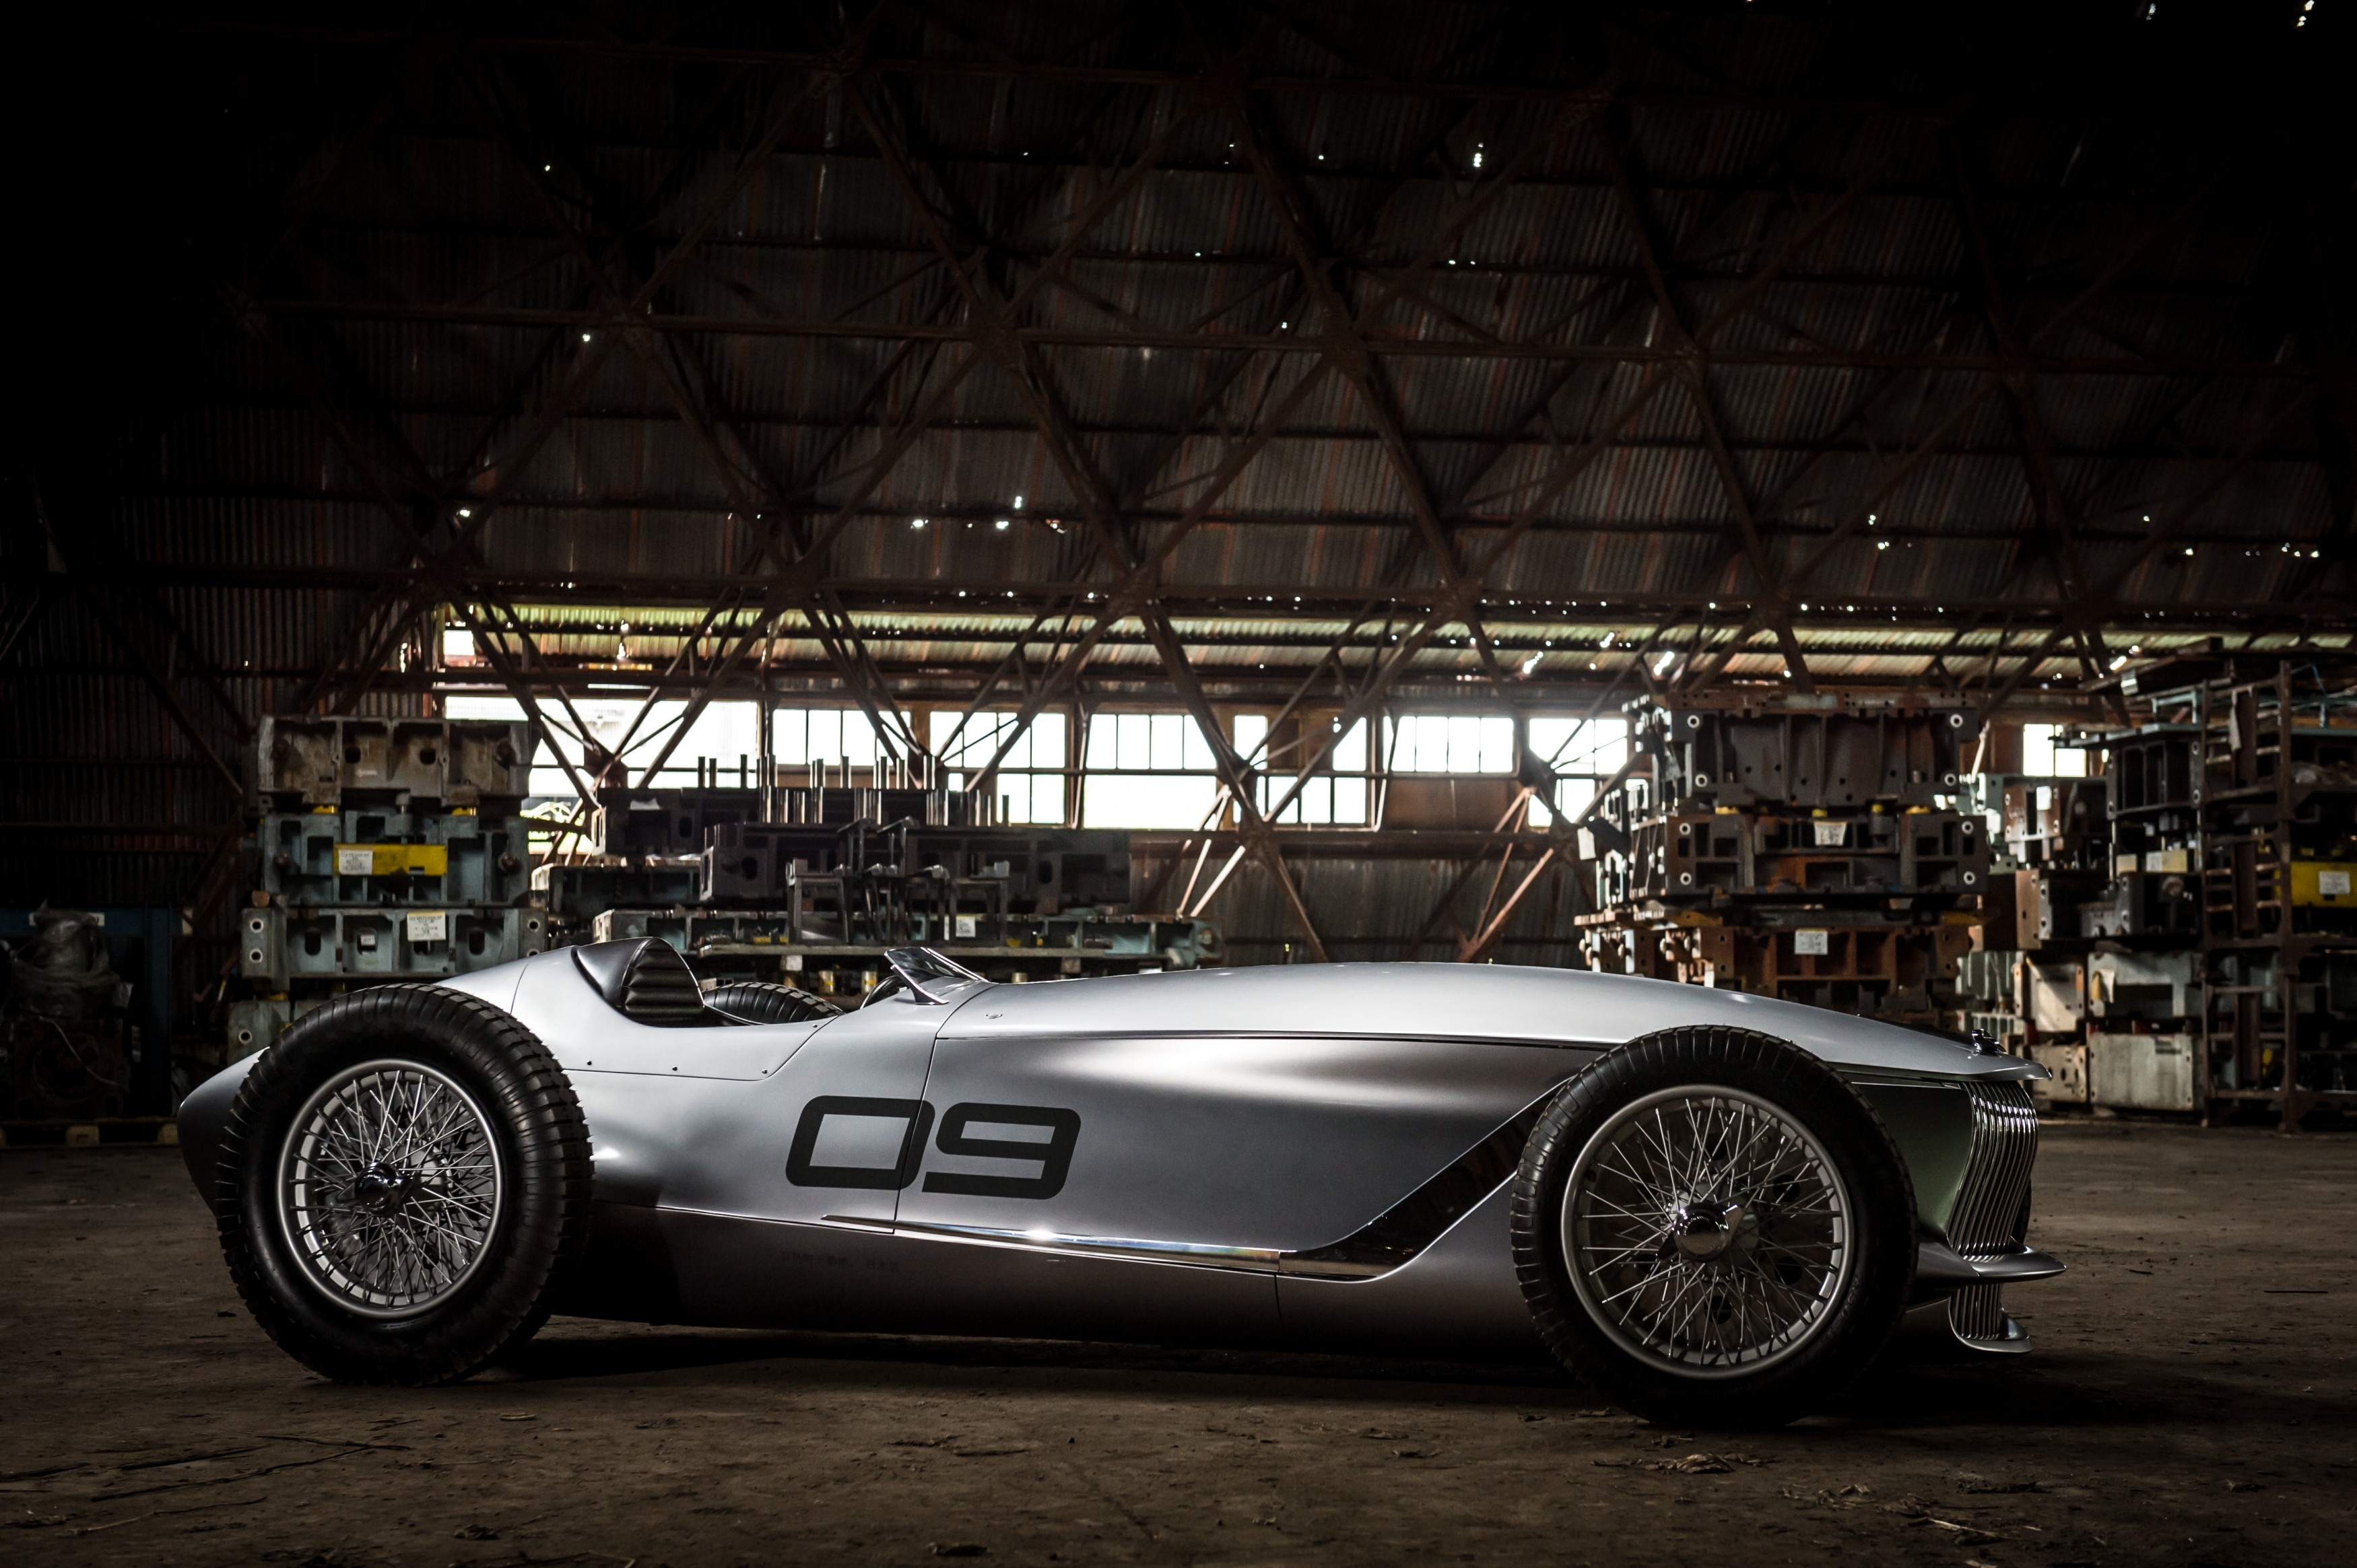 Vintage Car Hd Wallpapers For Pc Wallpaper Infiniti Prototype 9 Cars 2018 Electric Cars